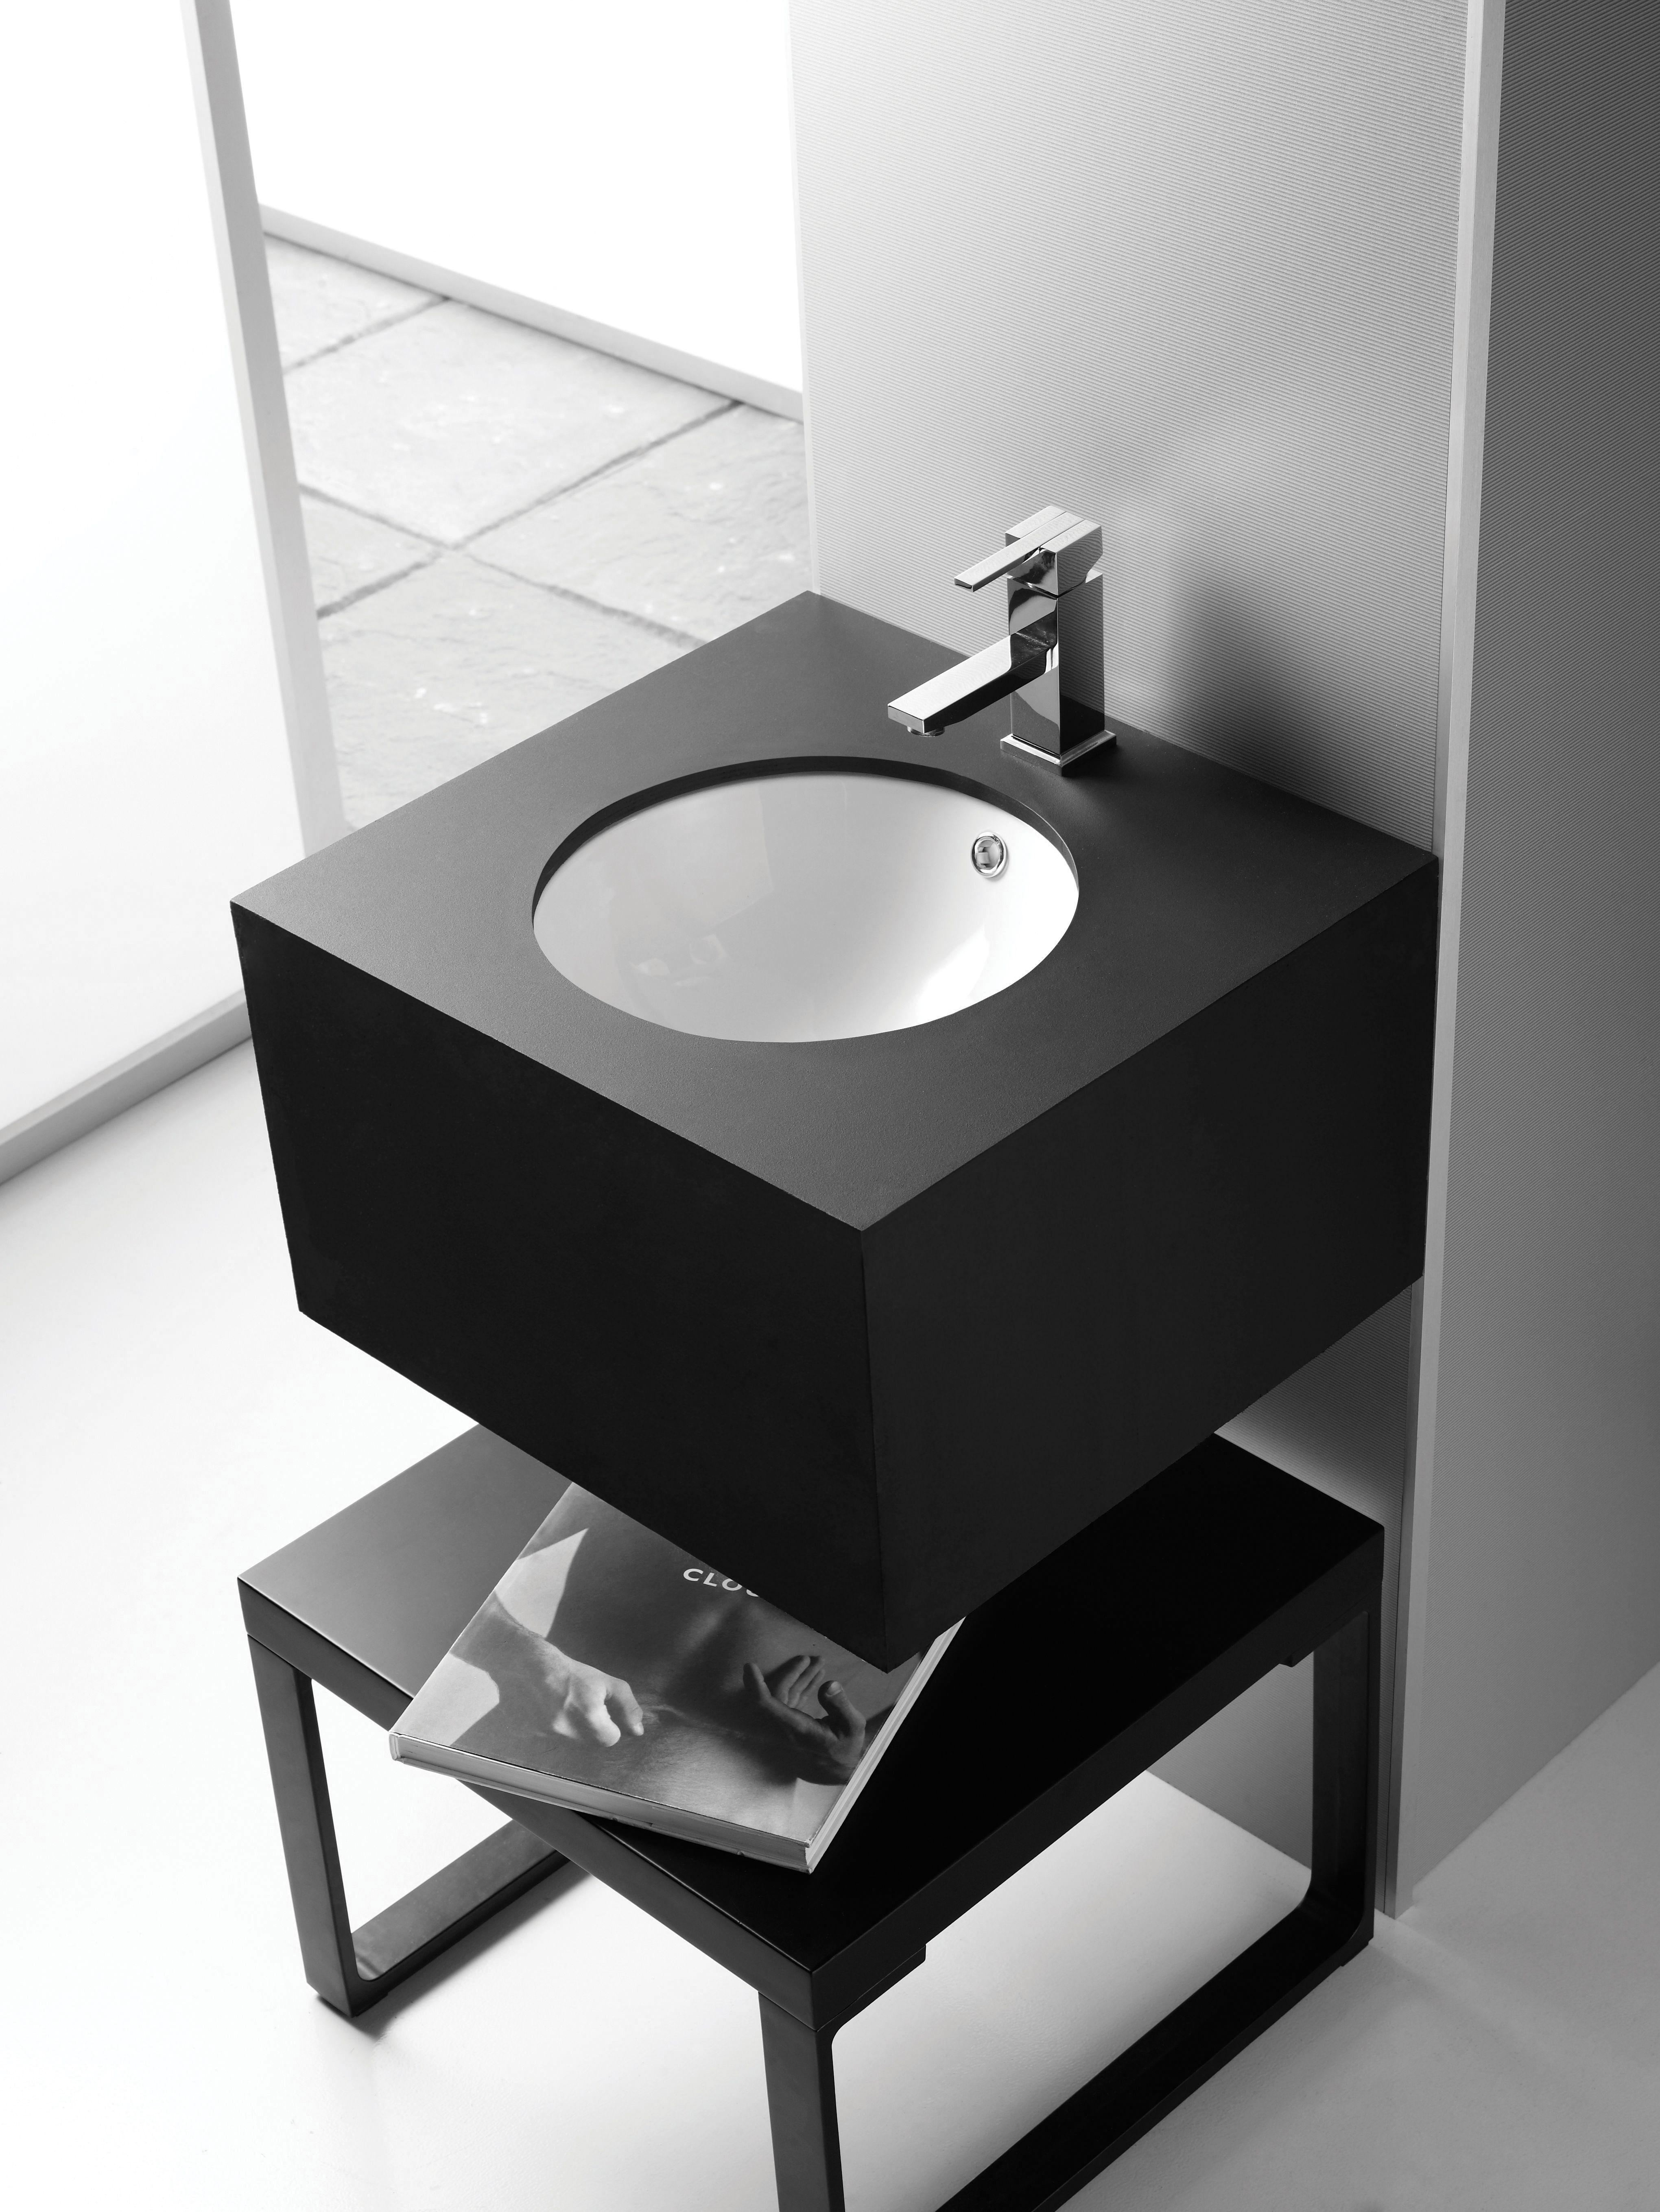 Undermounted Bathroom Sink Styles from Crosswater http://www.bauhaus- bathrooms.